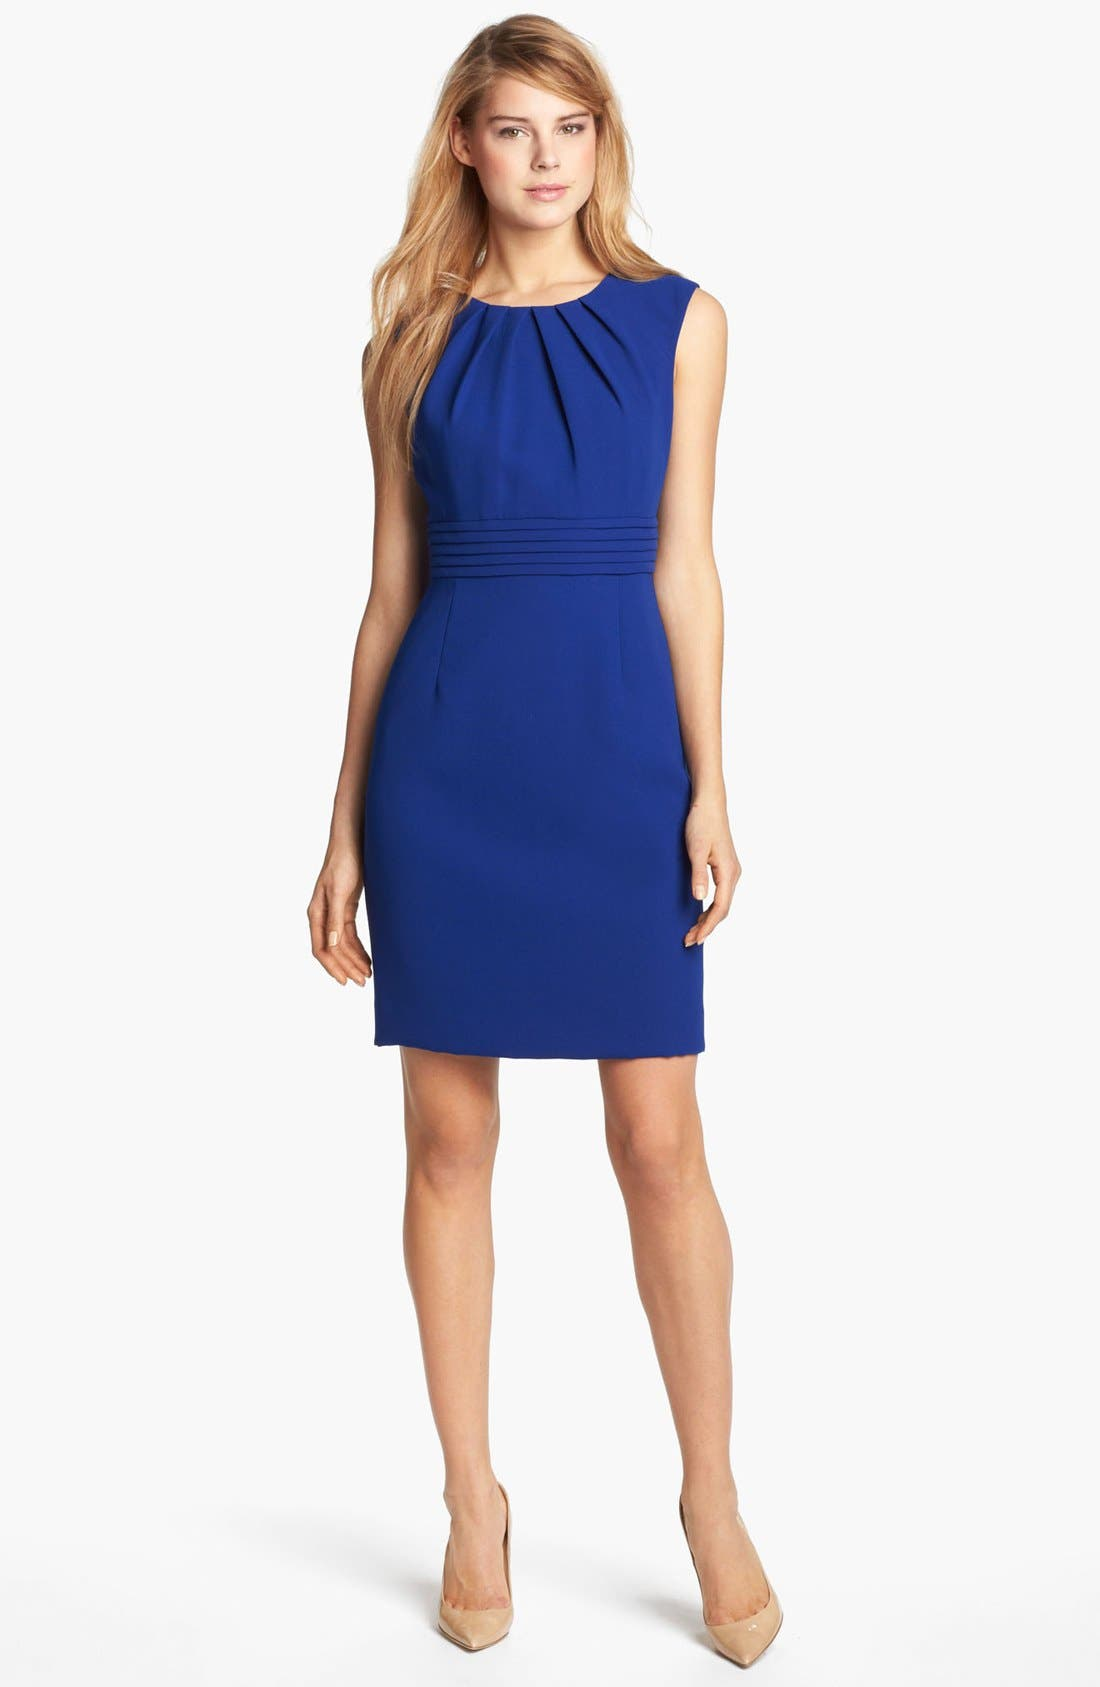 Main Image - Tahari by Arthur S. Levine Sleeveless Crepe Sheath Dress (Regular & Petite)